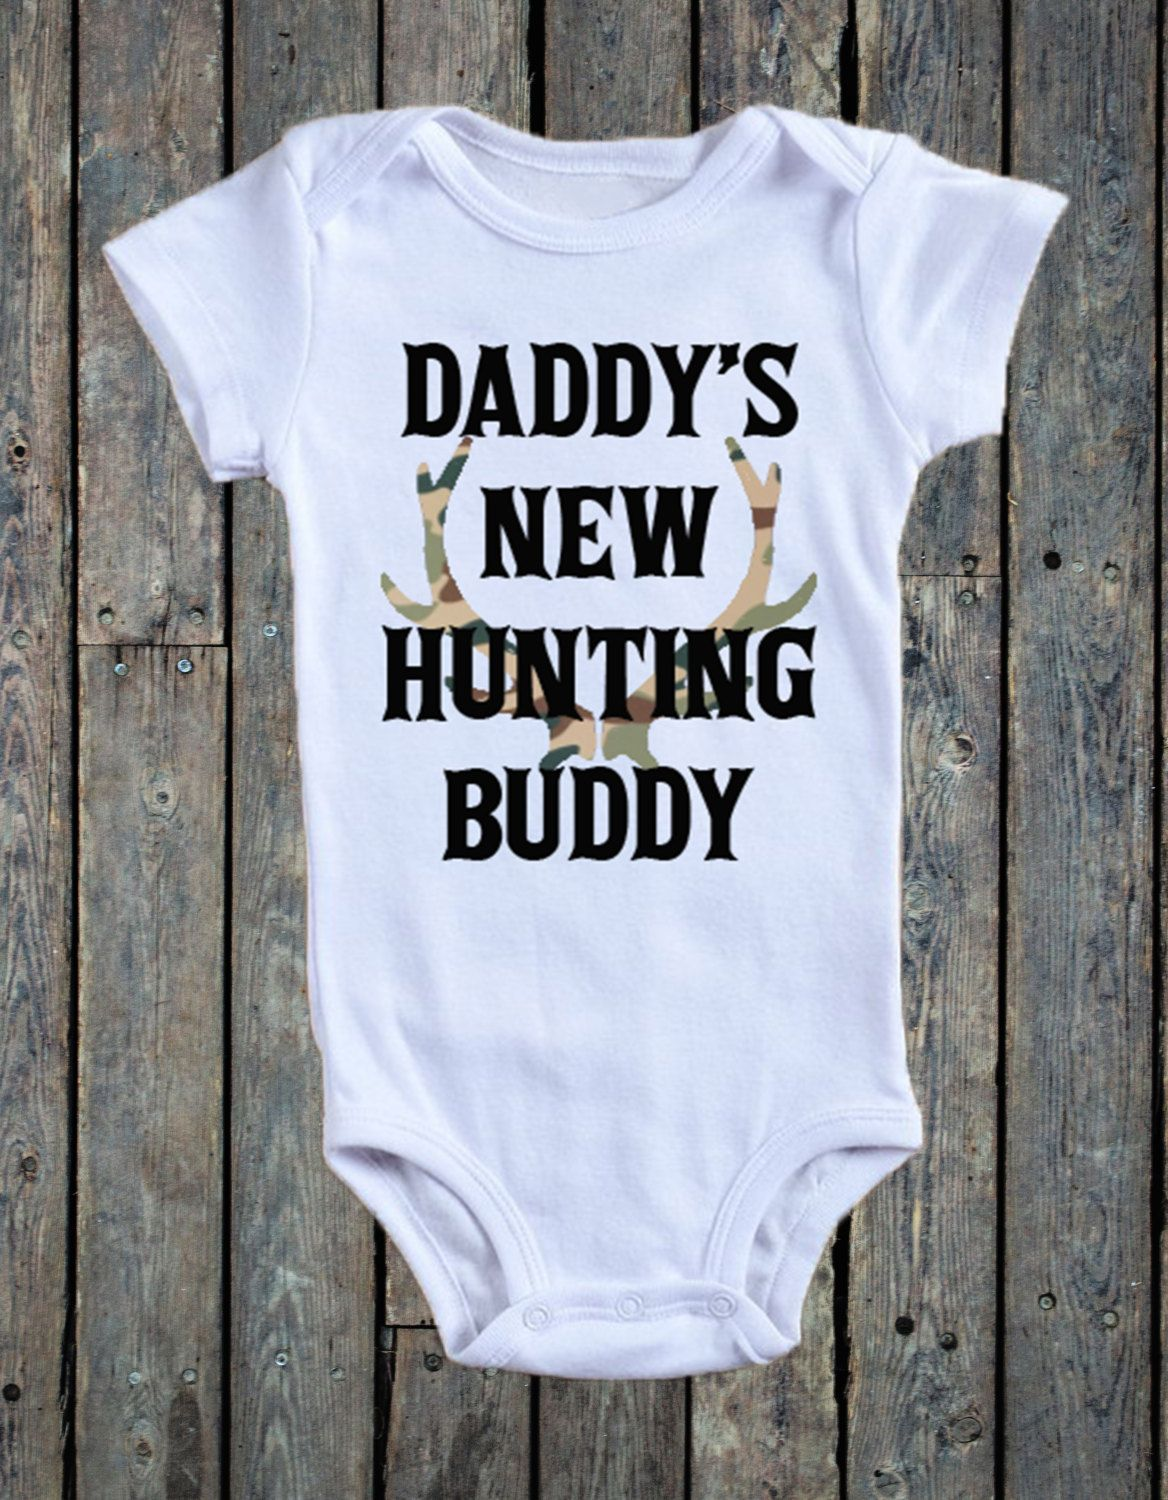 f01c4a0a83ccc Daddy's New Hunting Buddy Onesie®/ Hunting Onesie®/ Deer Onesie®/ Camo  Onesie®/ Baby Boy Onesie®/ Baby boy bodysuit/ dove hunting/ by  RustikBoutique on Etsy